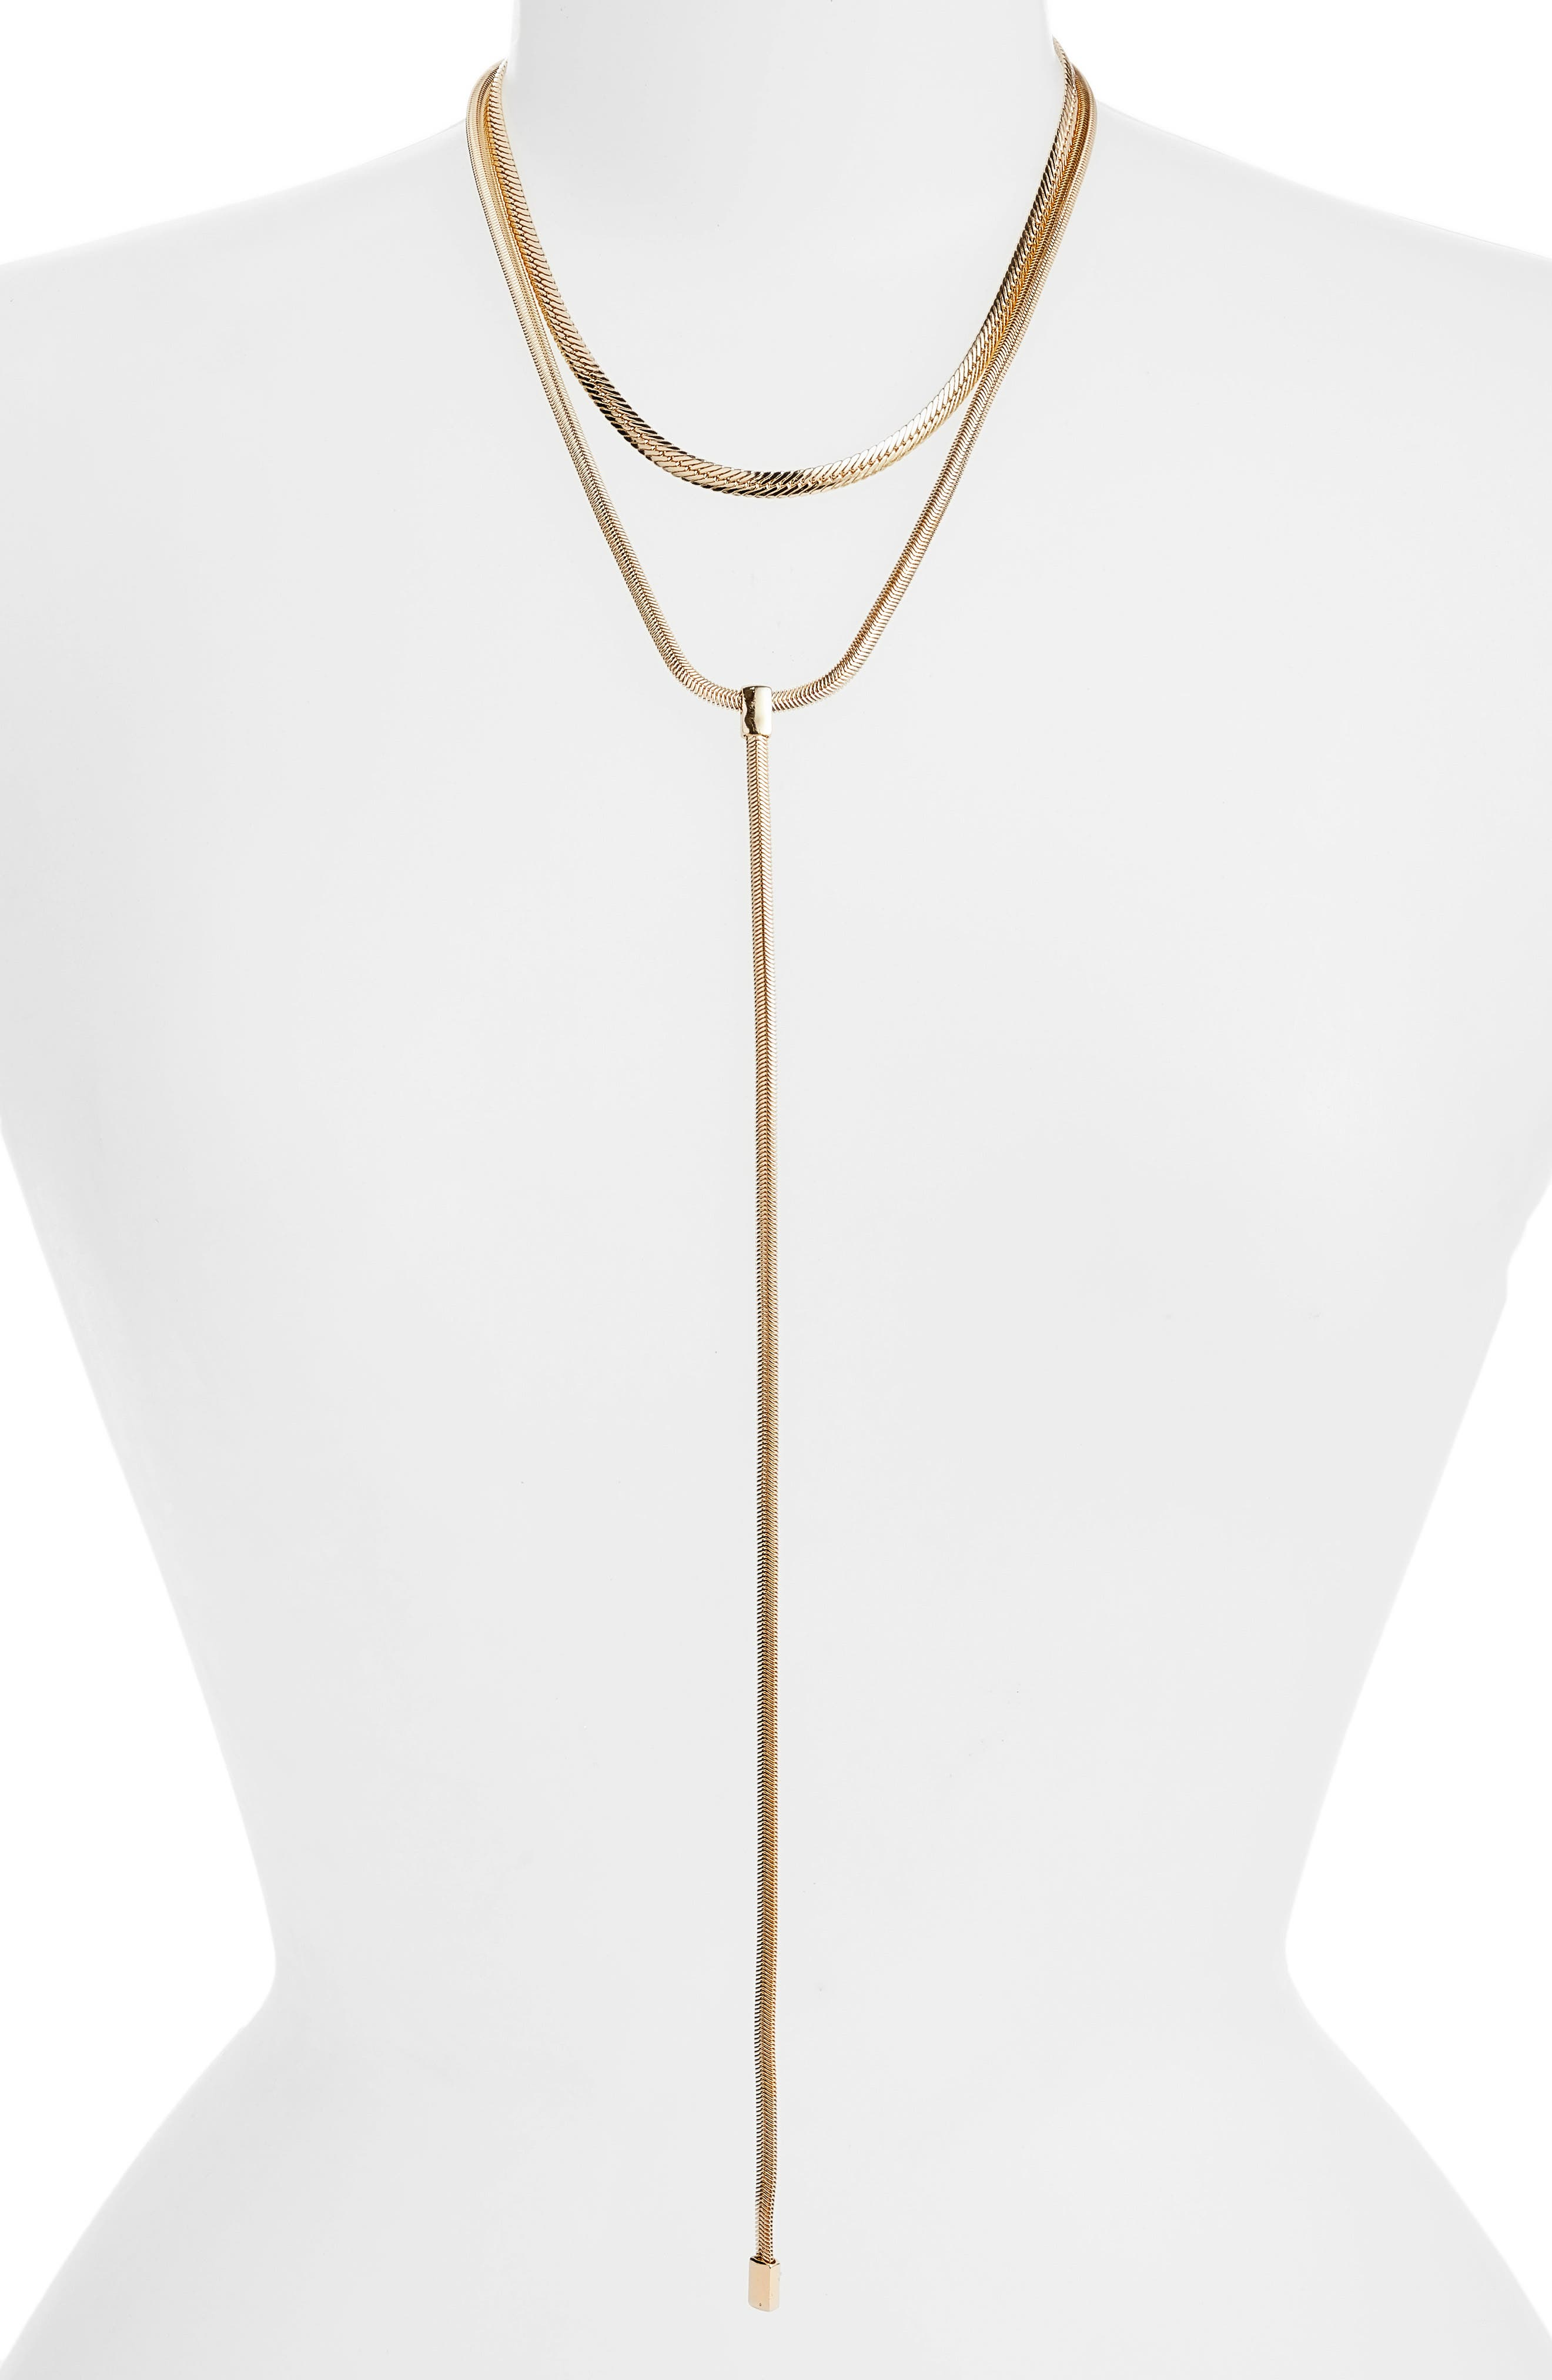 2-in-1 Snake Chain Lariat Necklace,                             Main thumbnail 1, color,                             GOLD